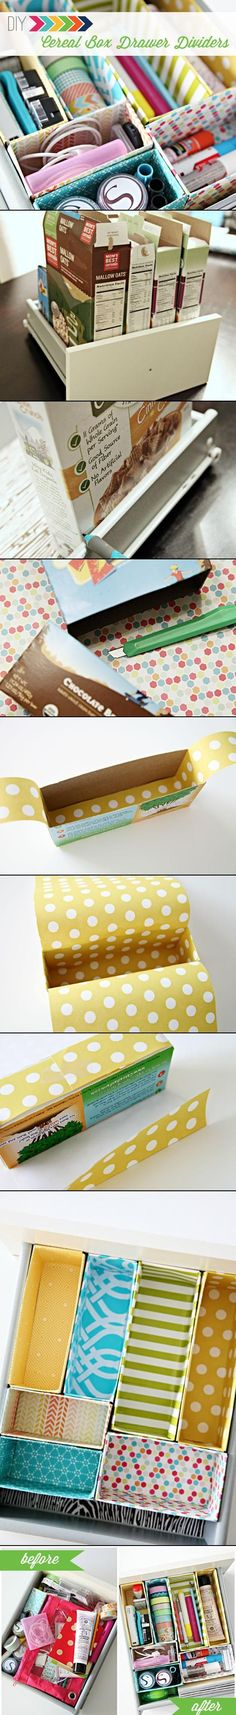 DIY Cereal Box Drawer Dividers, by I Heart Organizing. (LOVE this idea!)